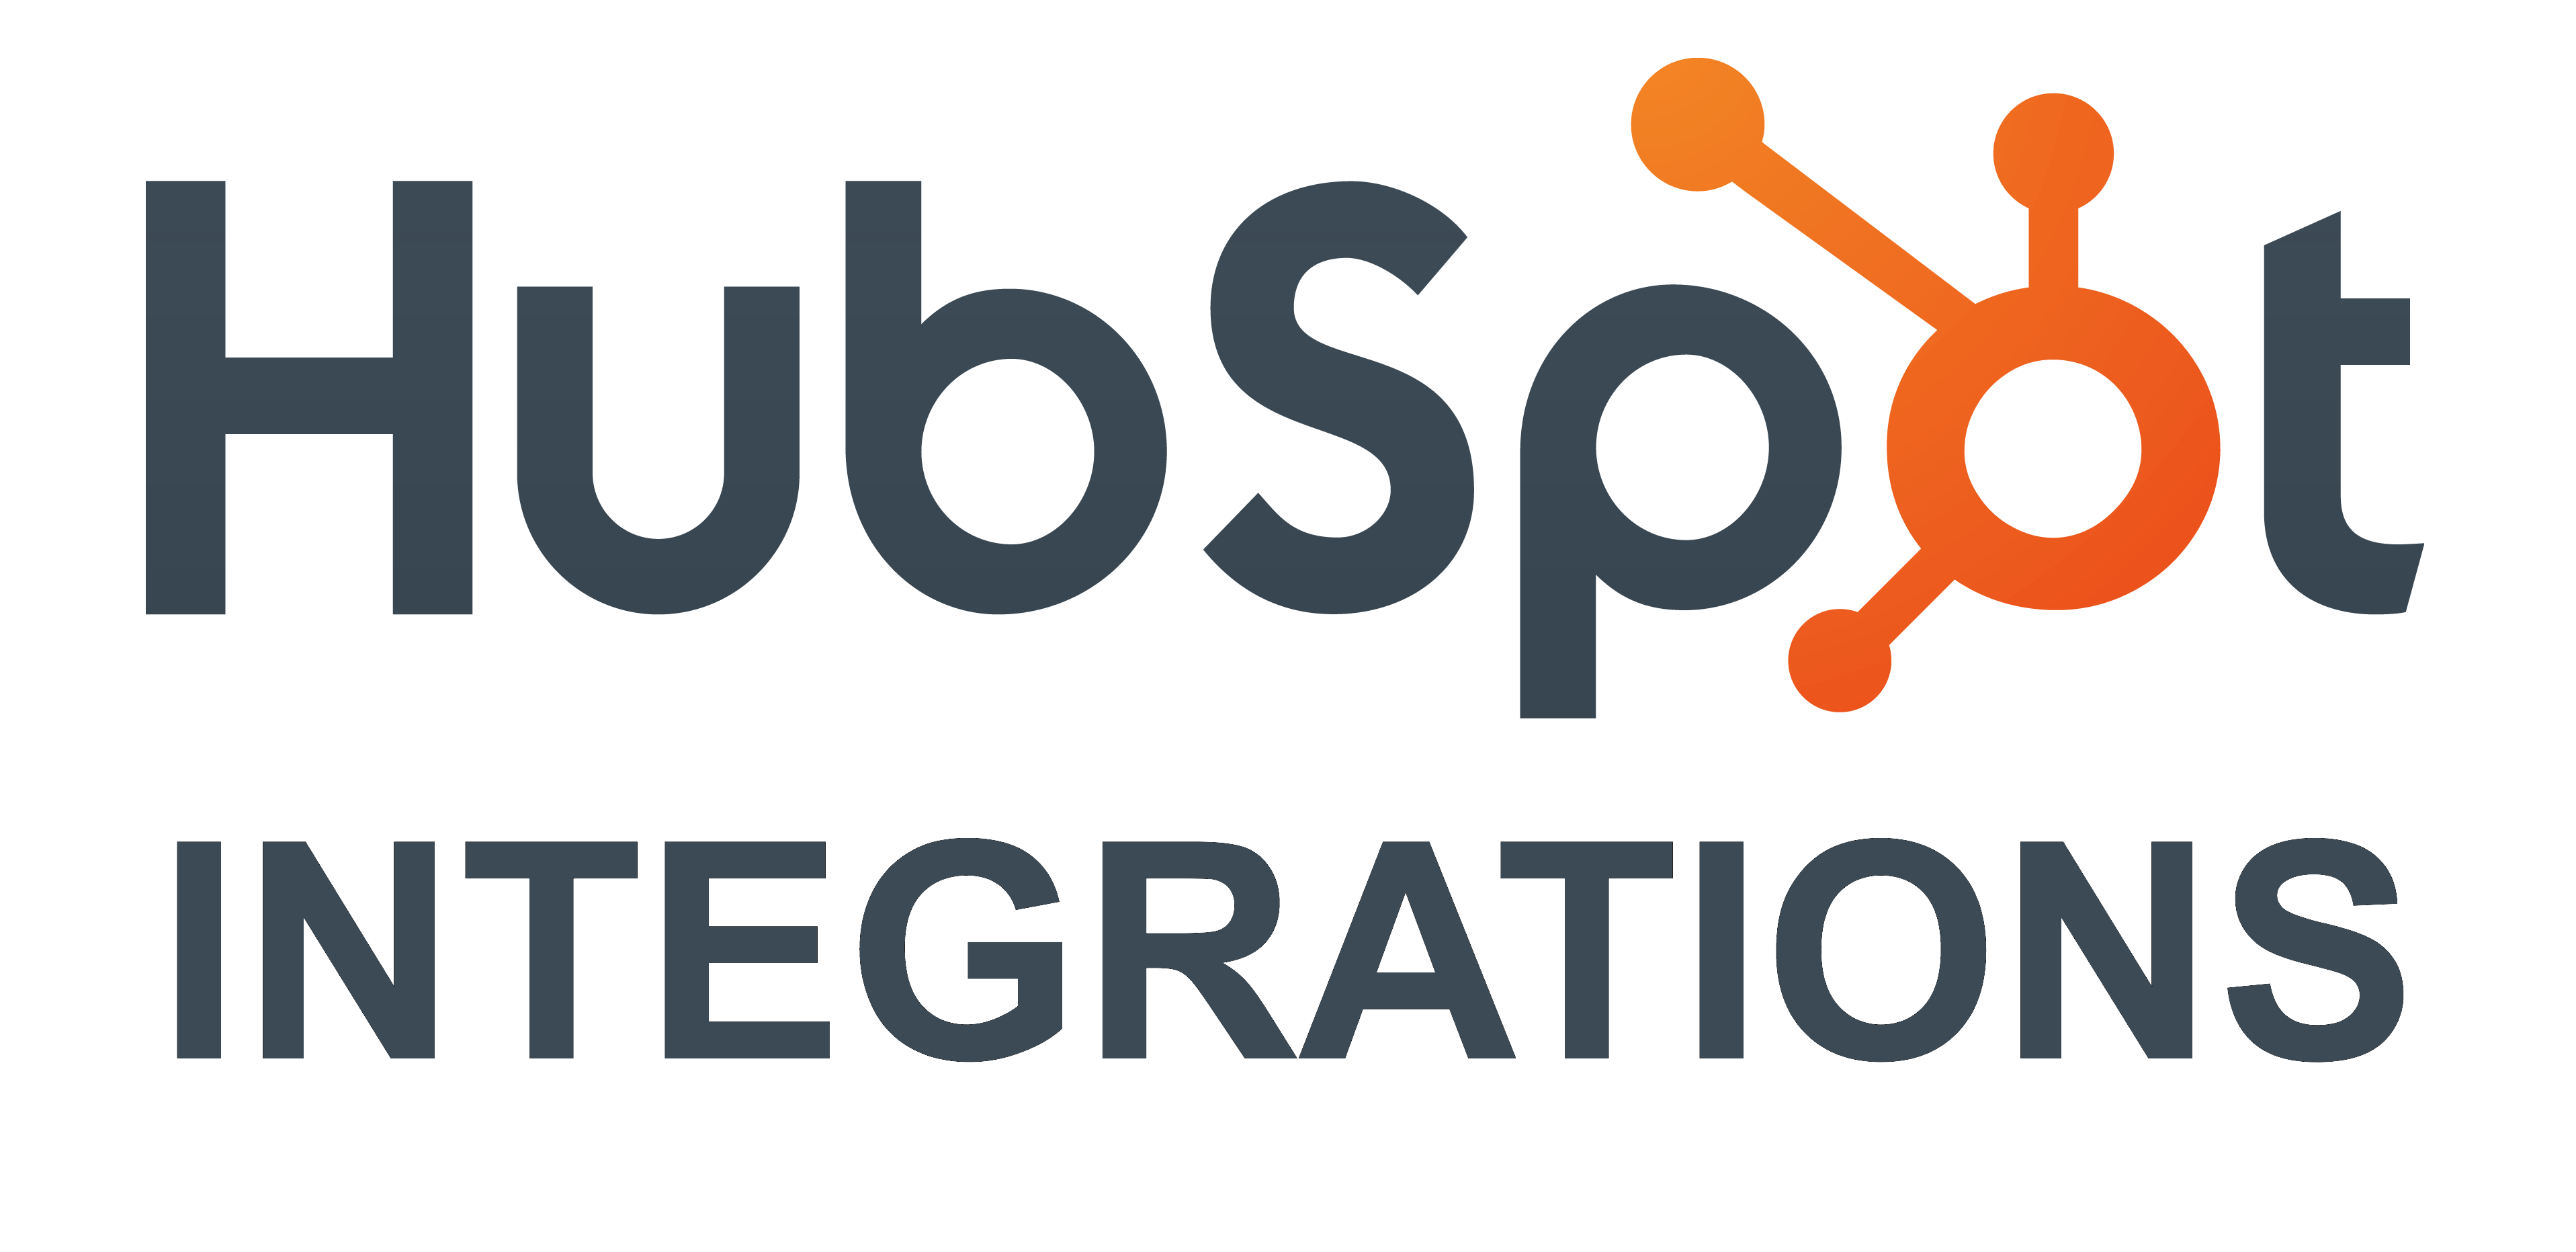 https://cdn2.hubspot.net/hubfs/32387/HS%20Integrations%20copy.png